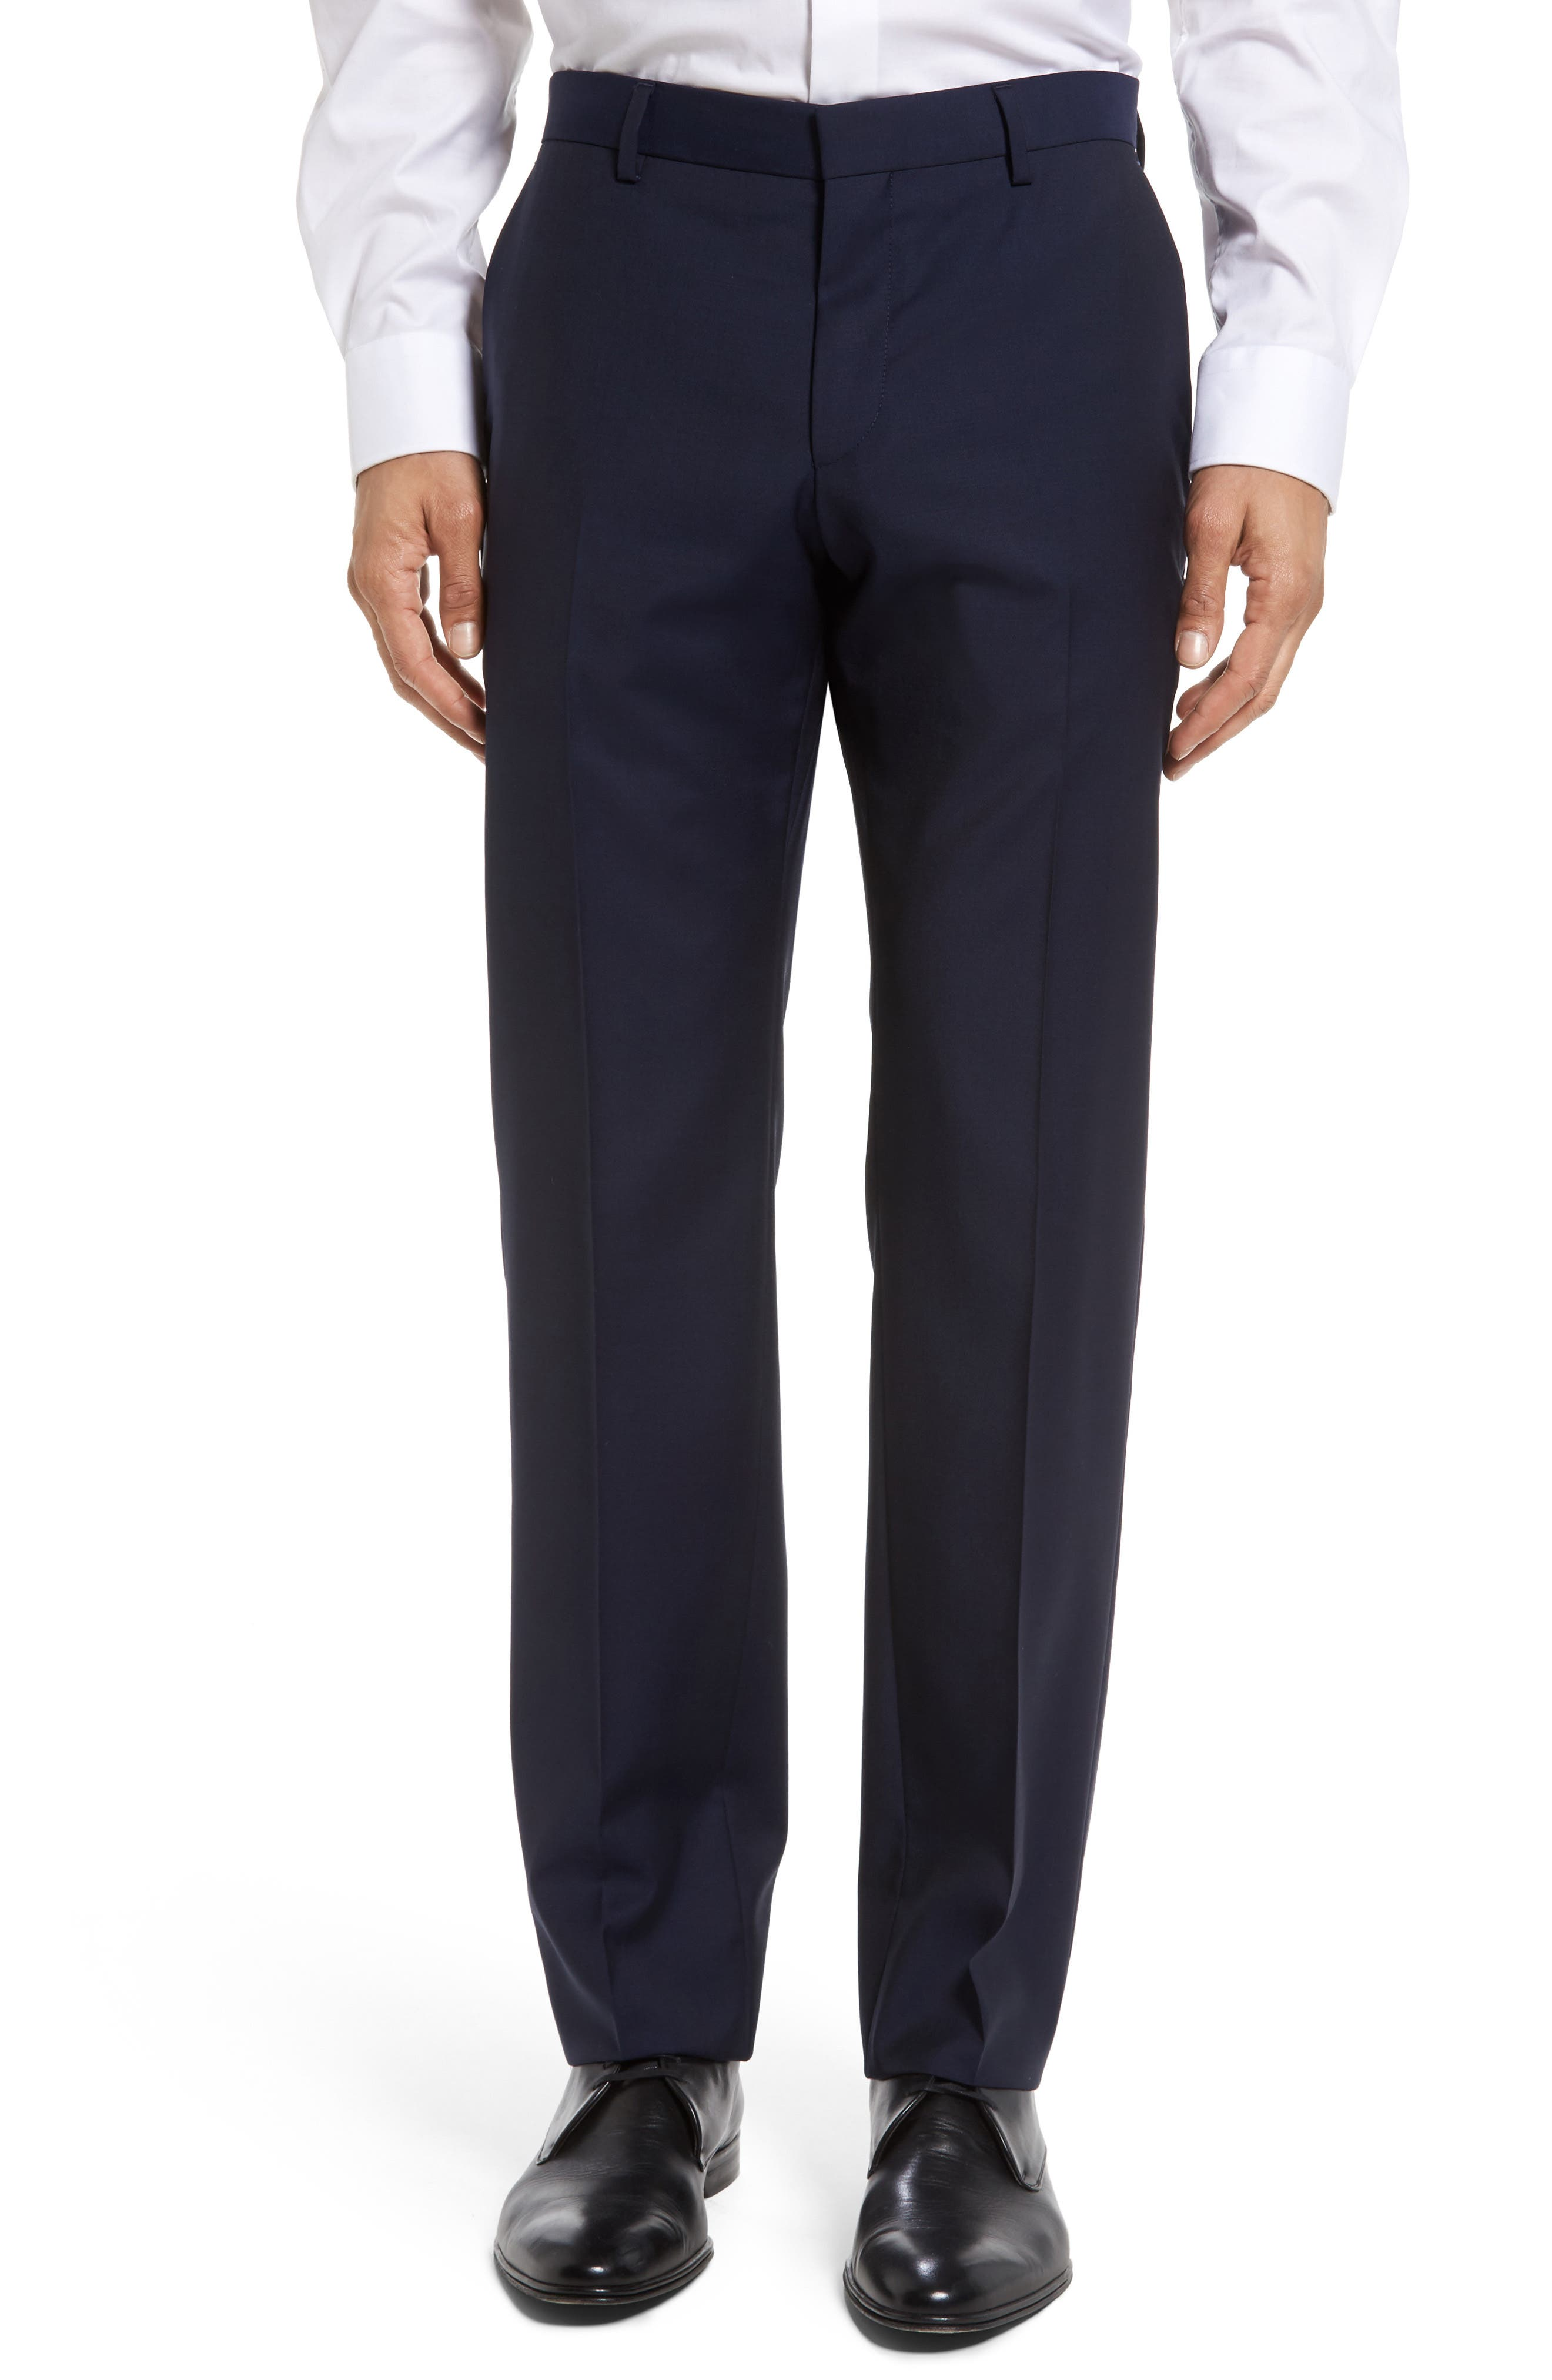 Genesis Flat Front Trim Fit Solid Wool Trousers,                         Main,                         color, Navy